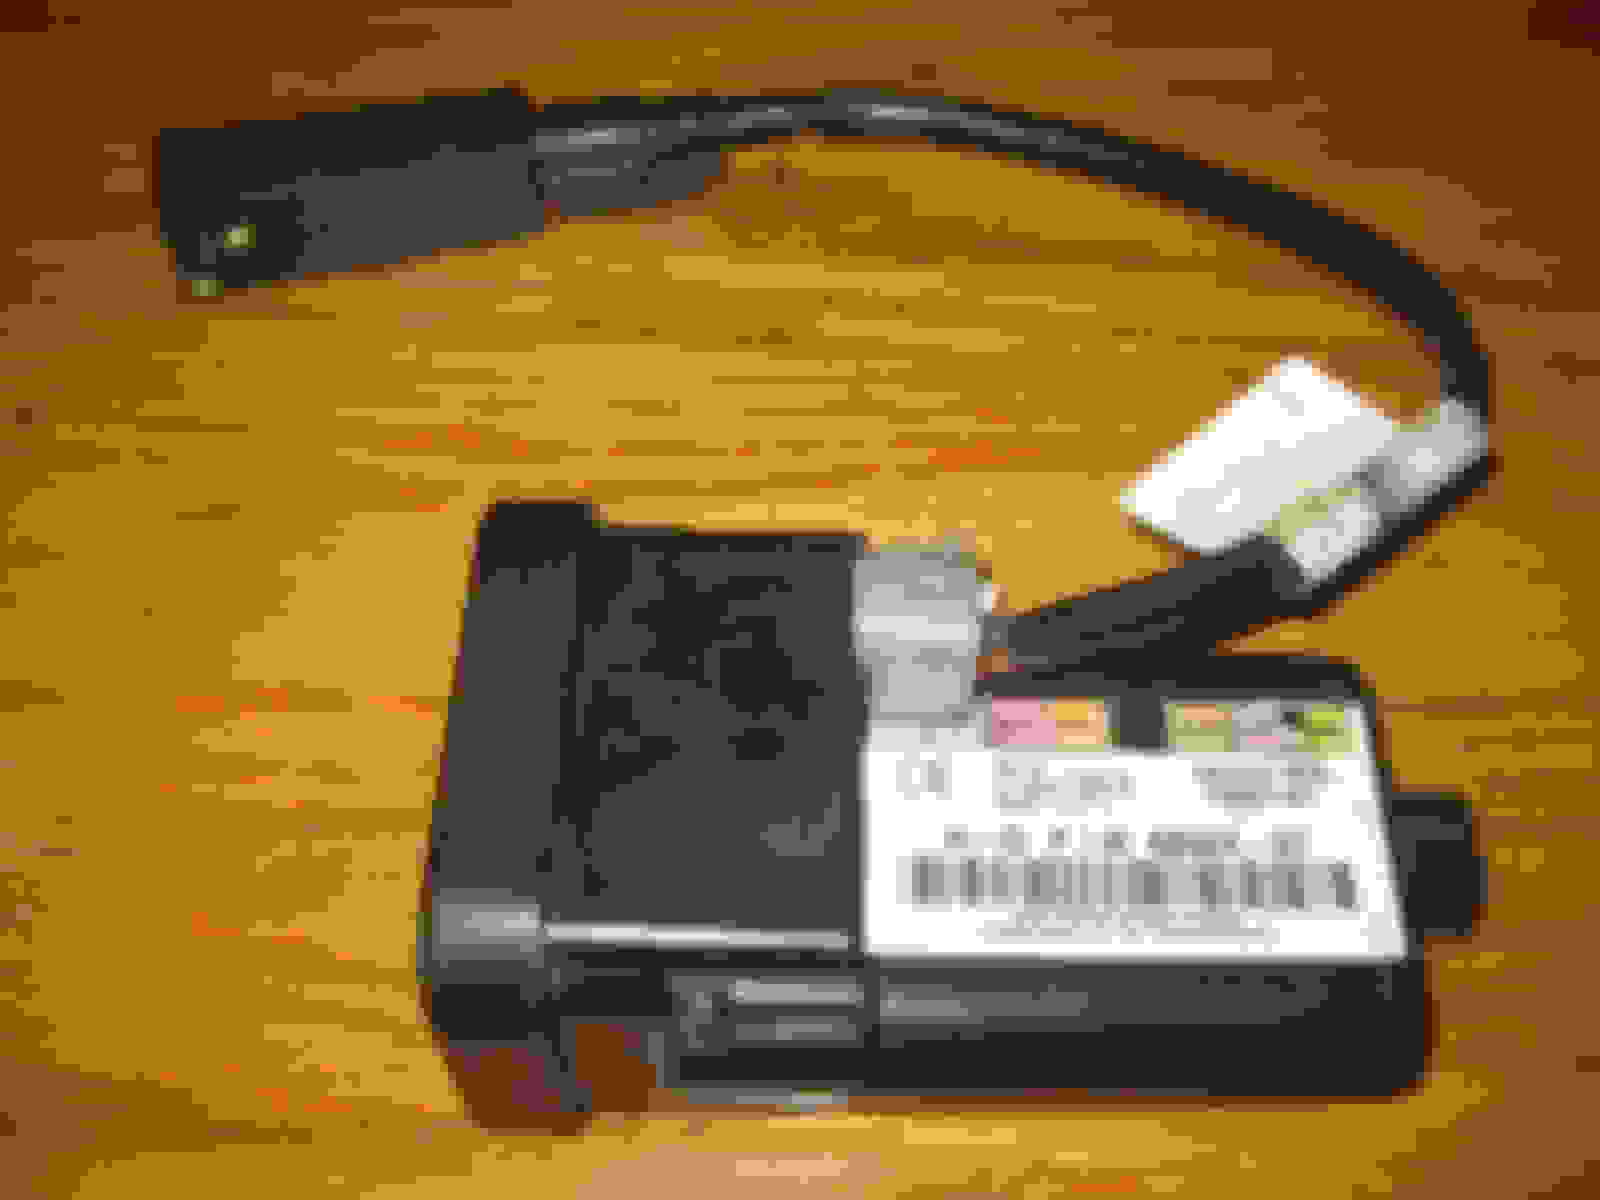 Security TSSM Install Questions - Harley Davidson Forums